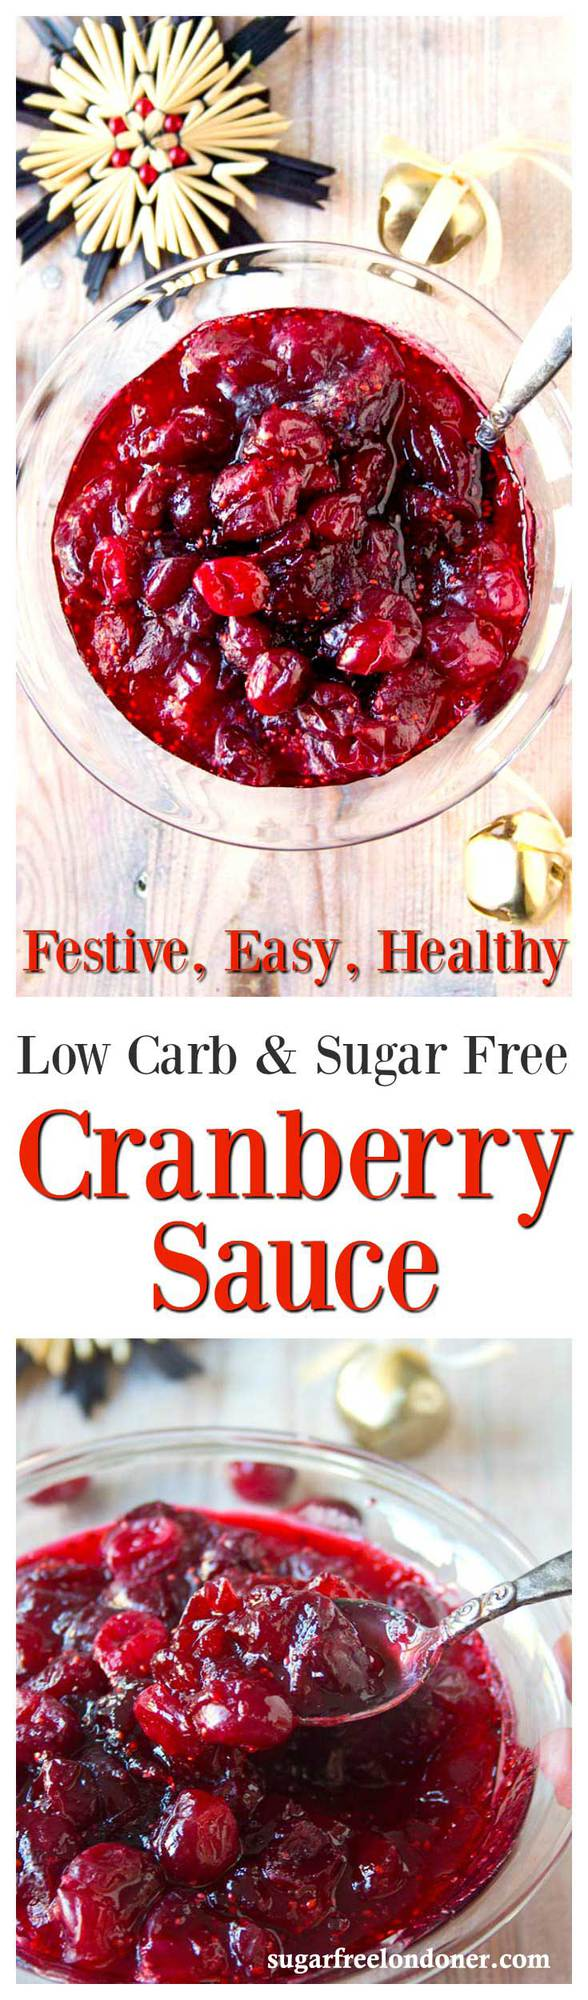 Try this easy low carb cranberry sauce recipe for your next festive feast. Only 4 ingredients and ready in 10 minutes! Sugar Free, Keto